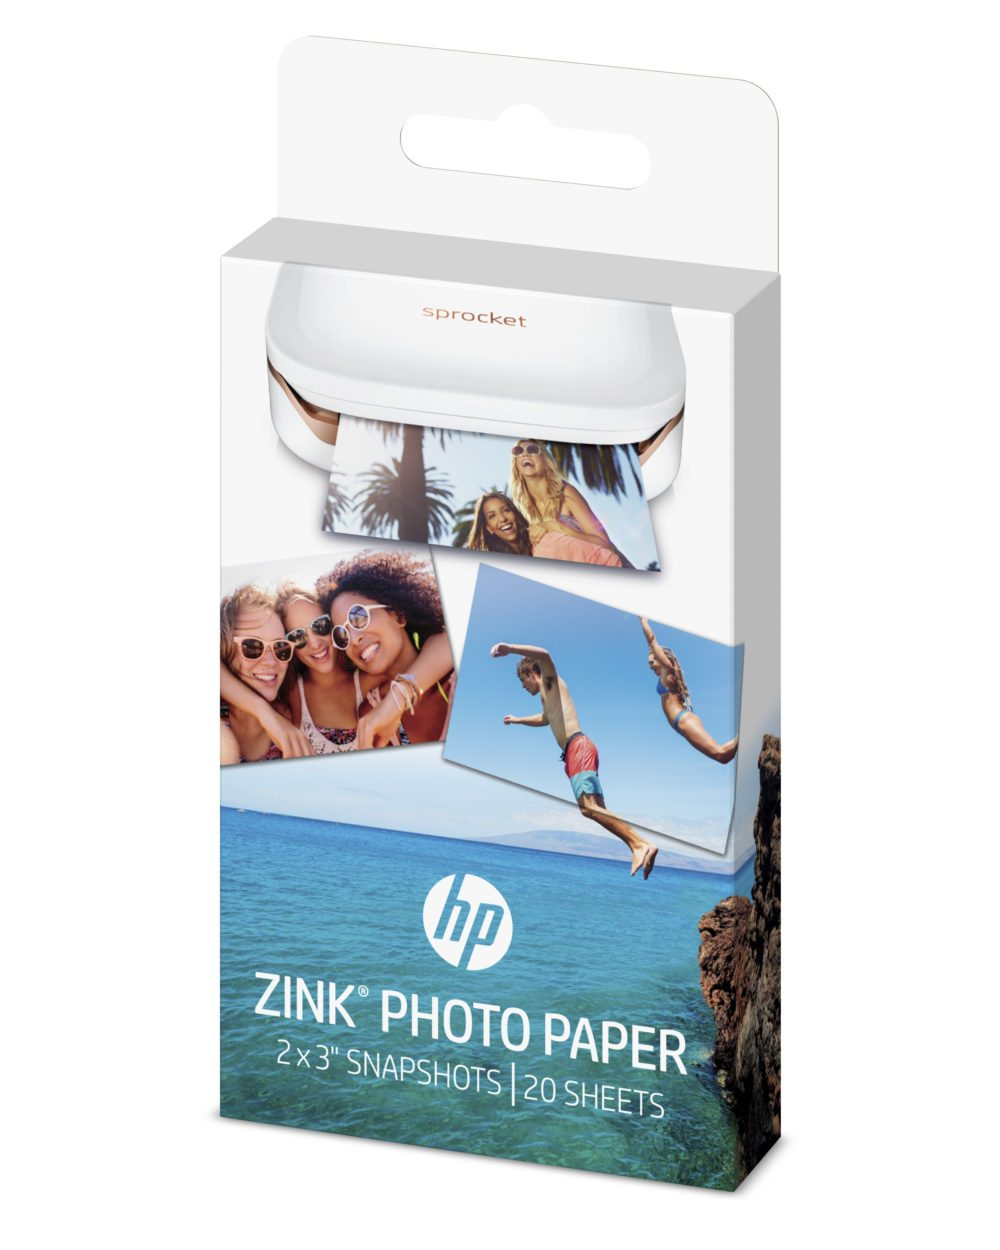 hp-zink-photo-paper